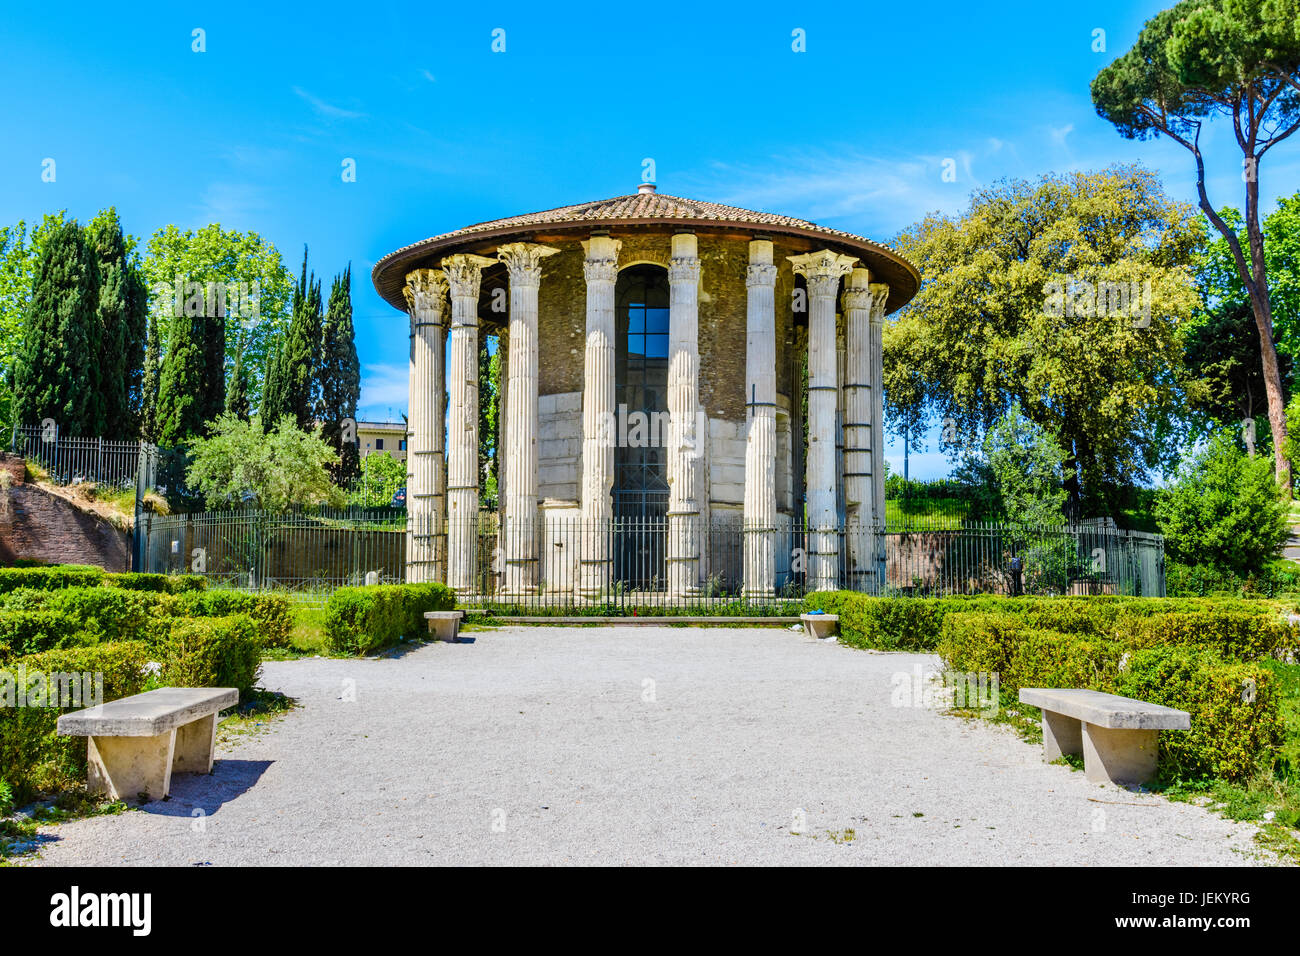 The Temple of Hercules Victor or Hercules Olivarius is an ancient edifice located in the Forum Boarium in Rome. - Stock Image